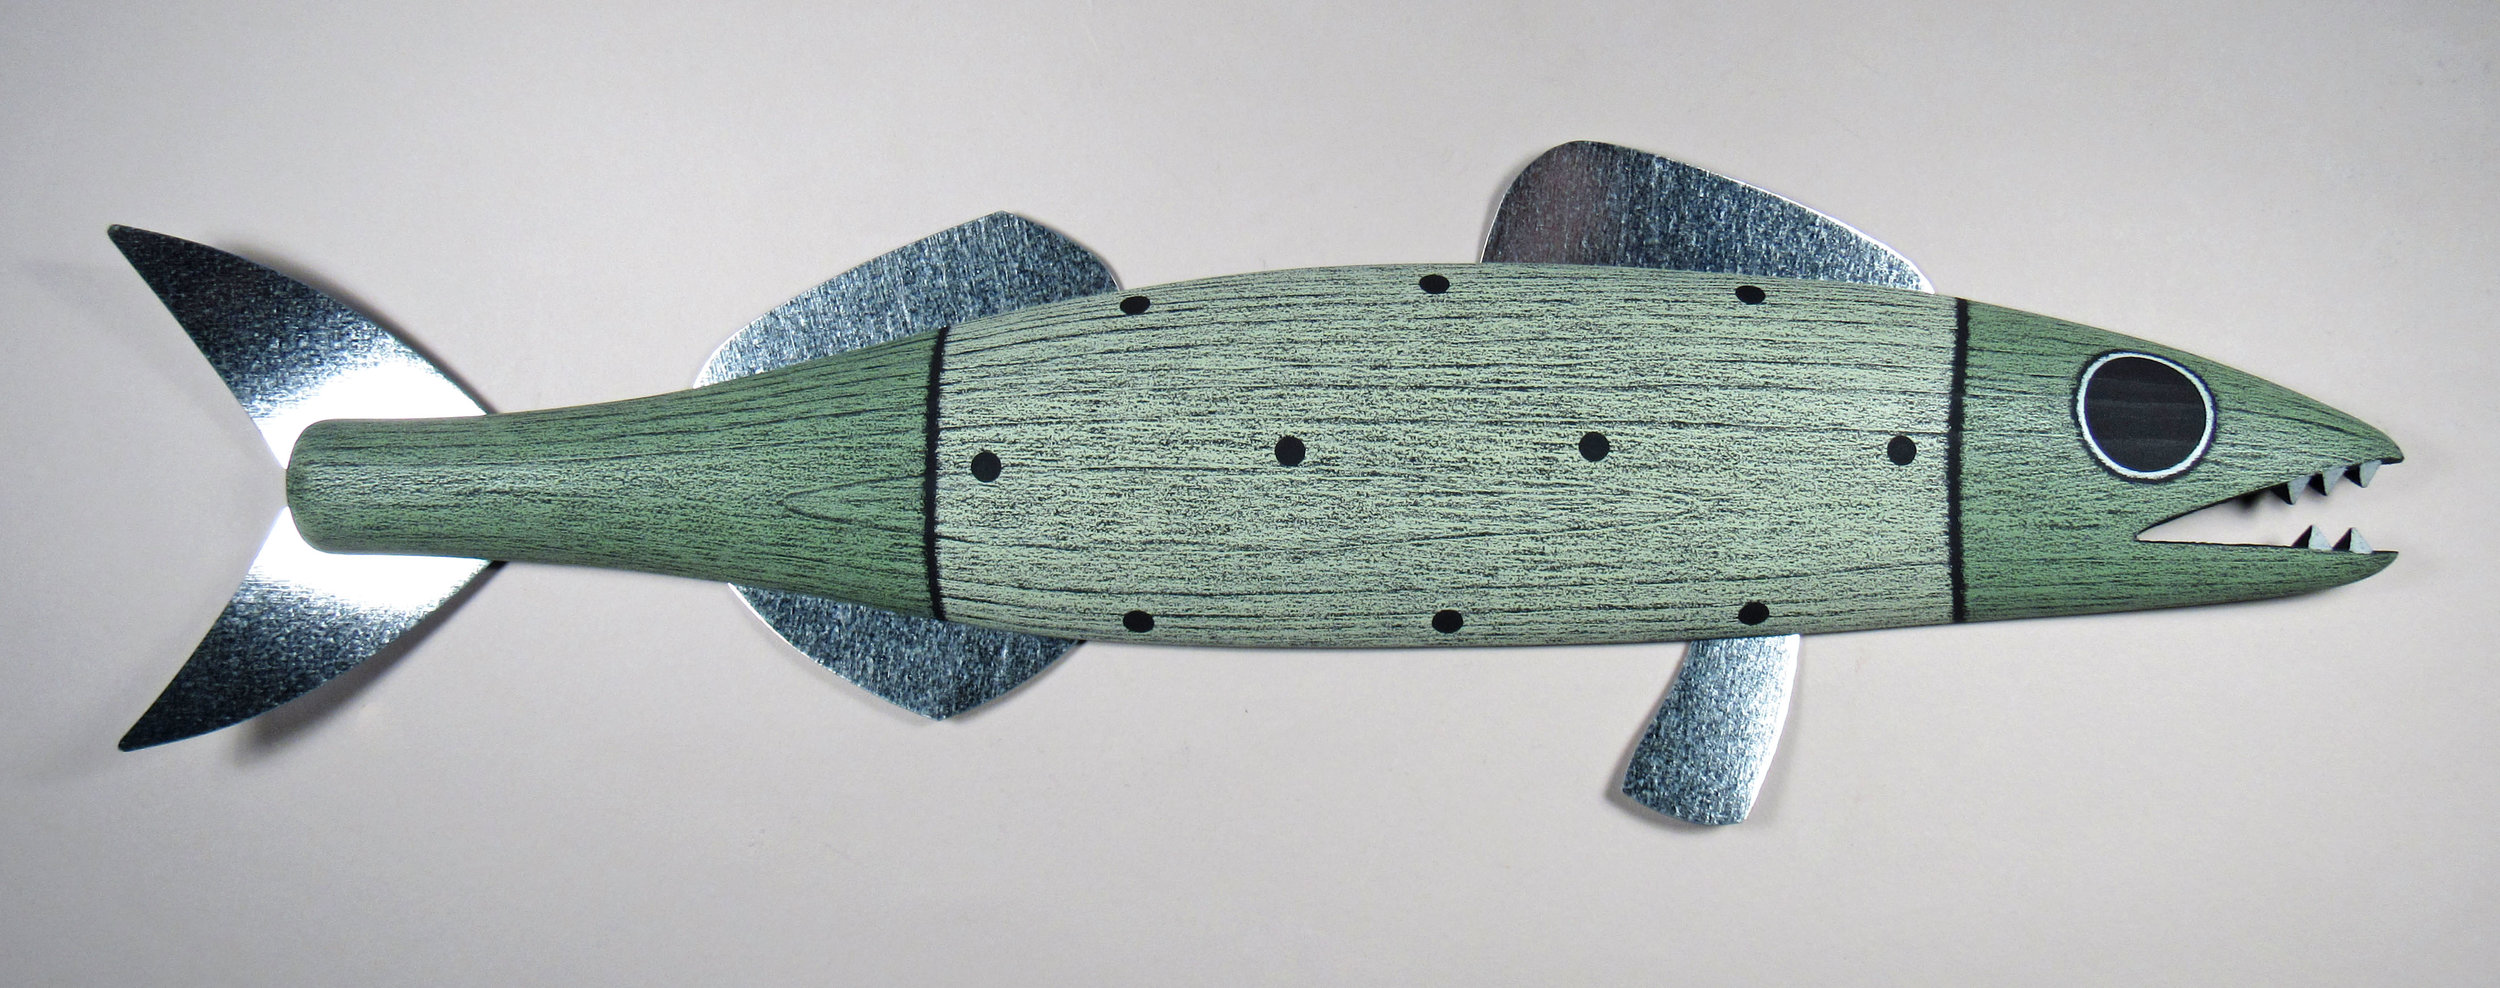 Carved Fish by Paul Sumner